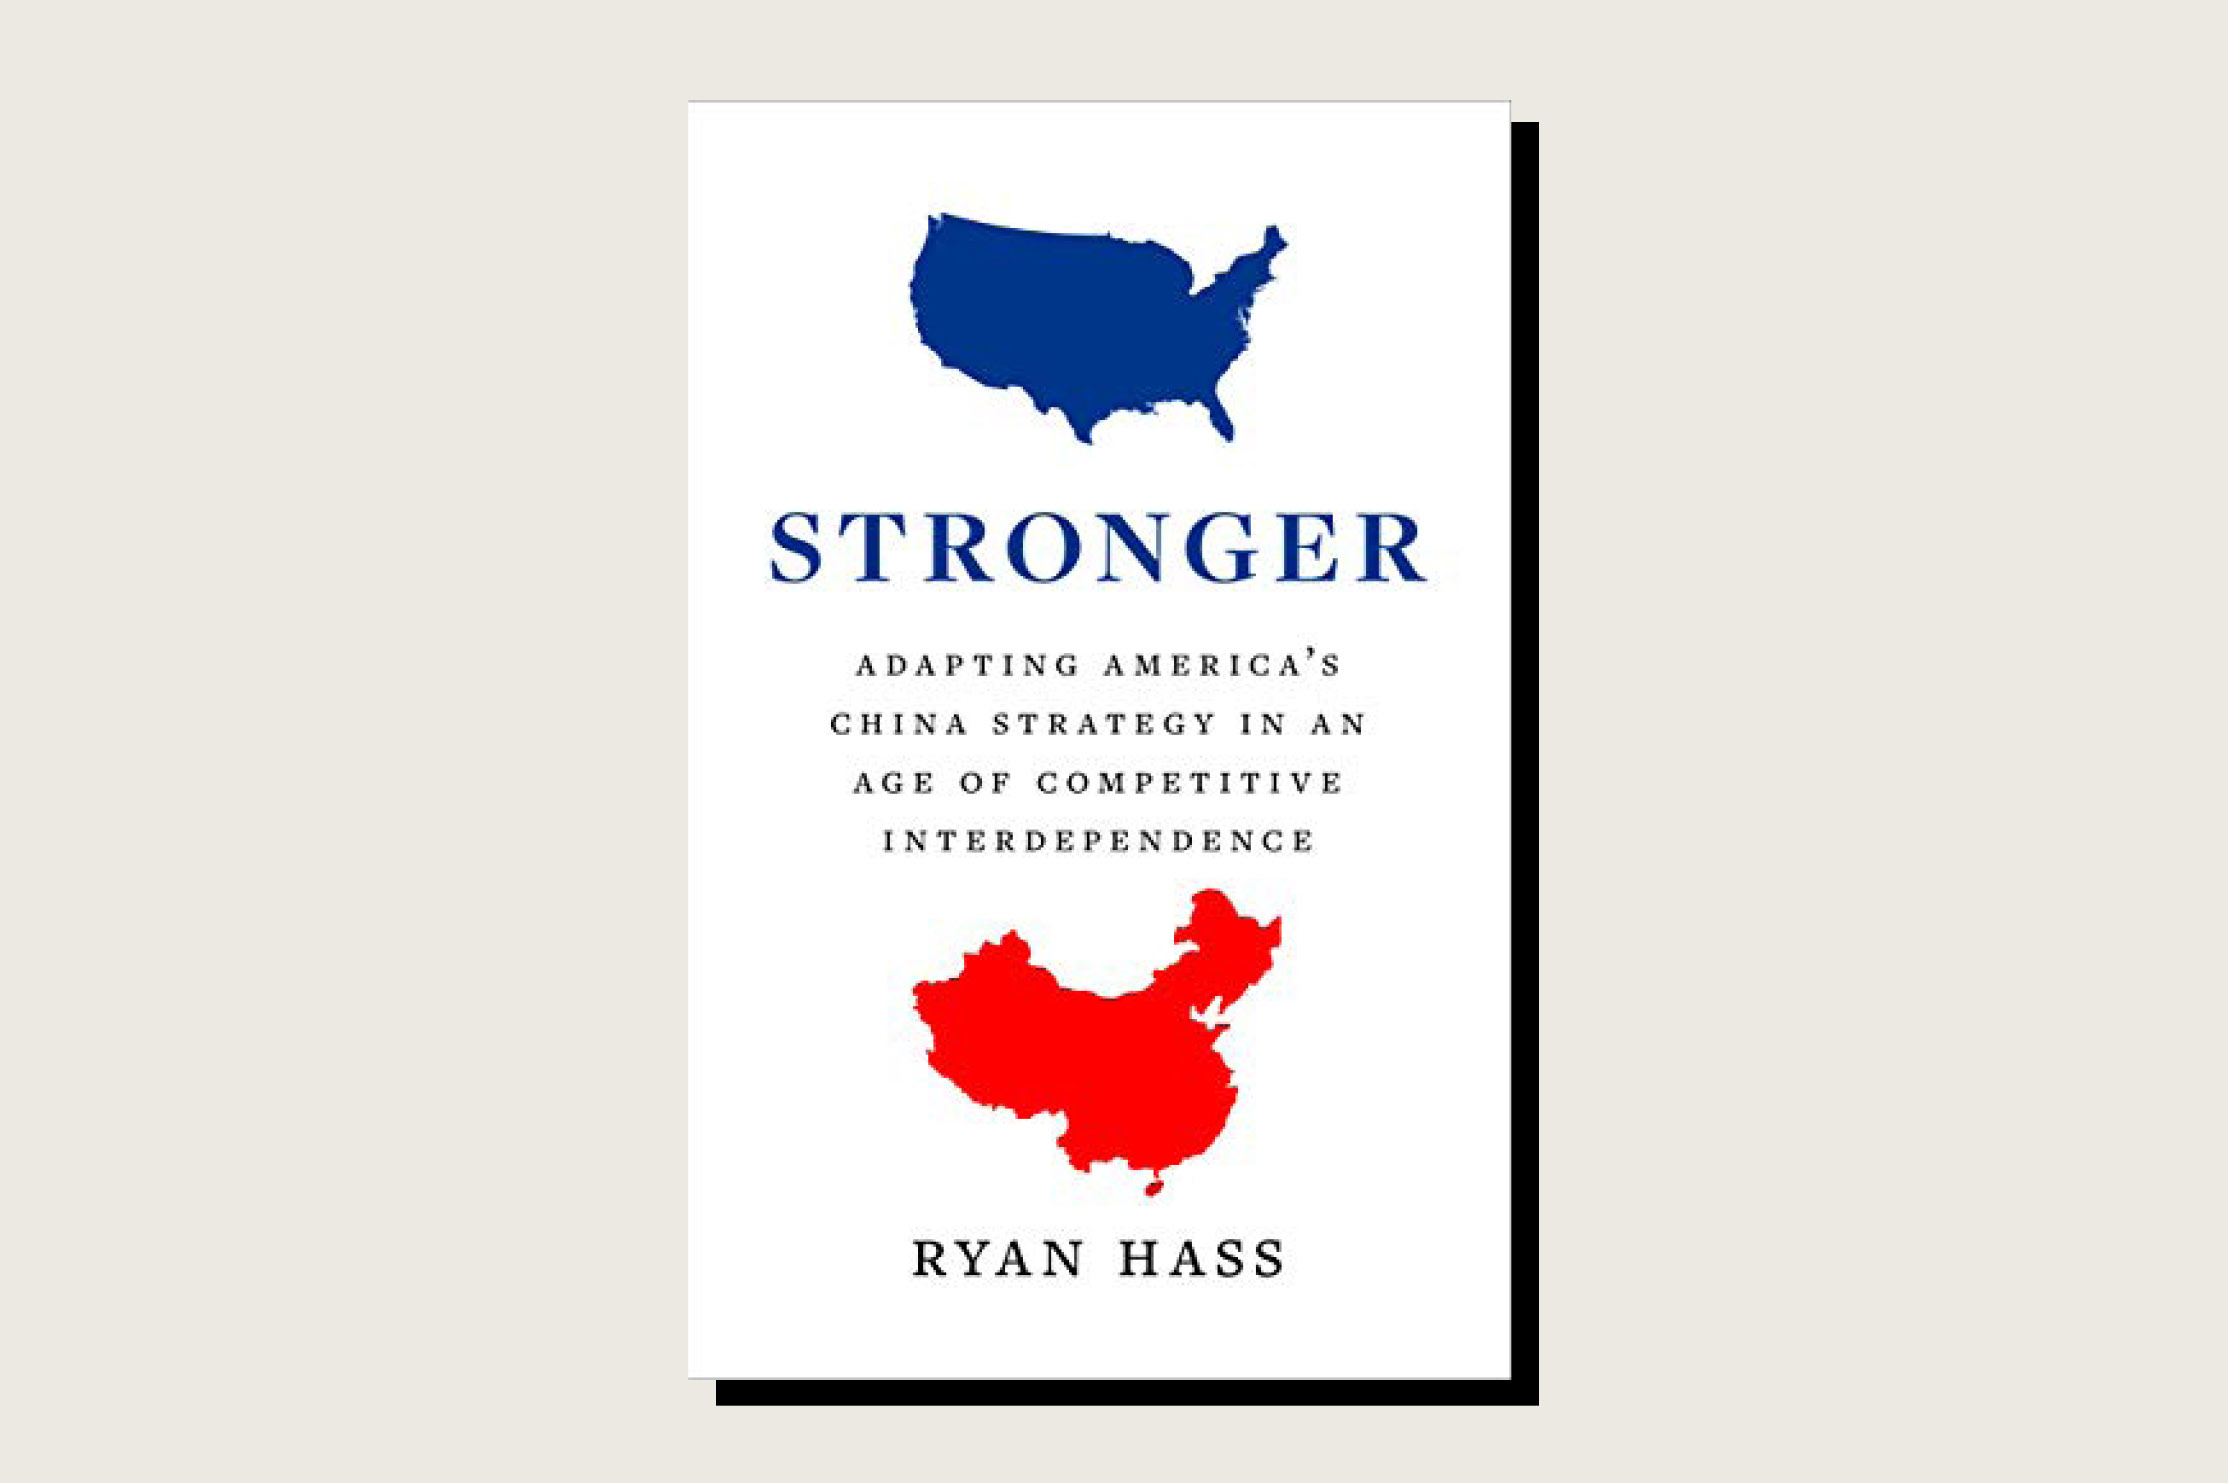 Stronger: Adapting America's China Strategy in an Age of Competitive Interdependence, Ryan Hass, Yale University Press, 240 pp., .50, March 2021